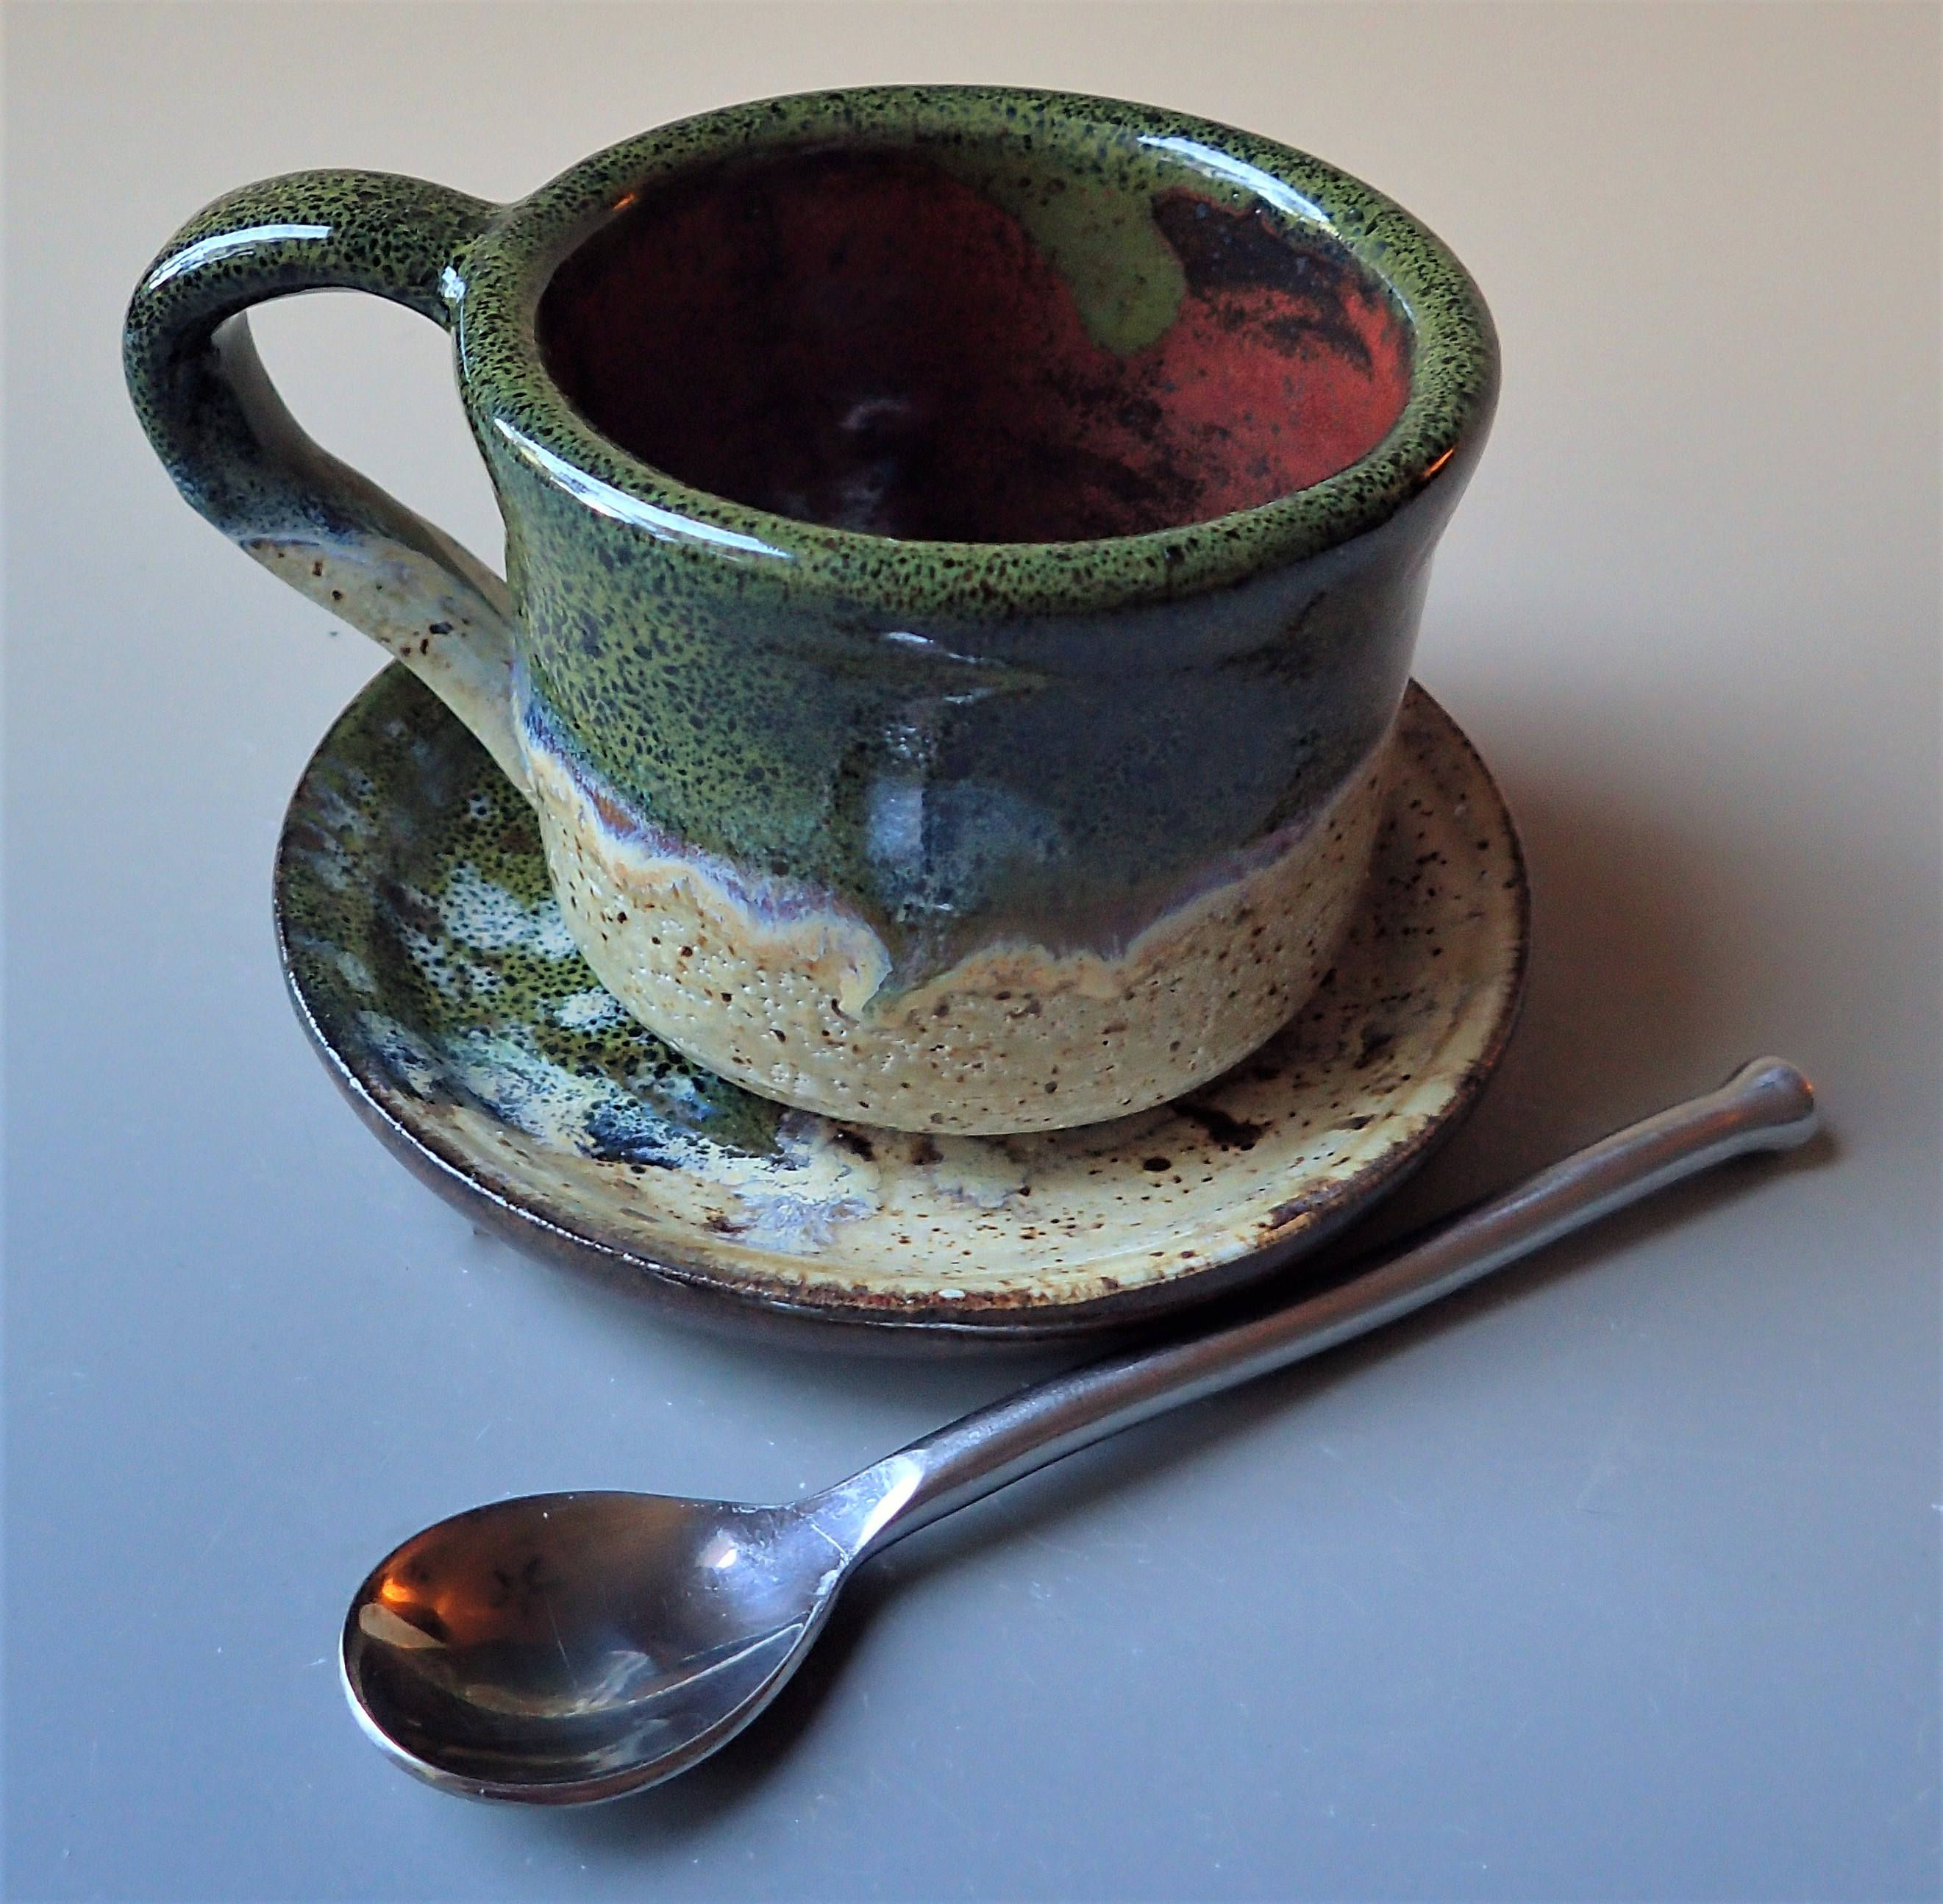 Espresso Cup and Saucer Double Espresso Lungo Size by